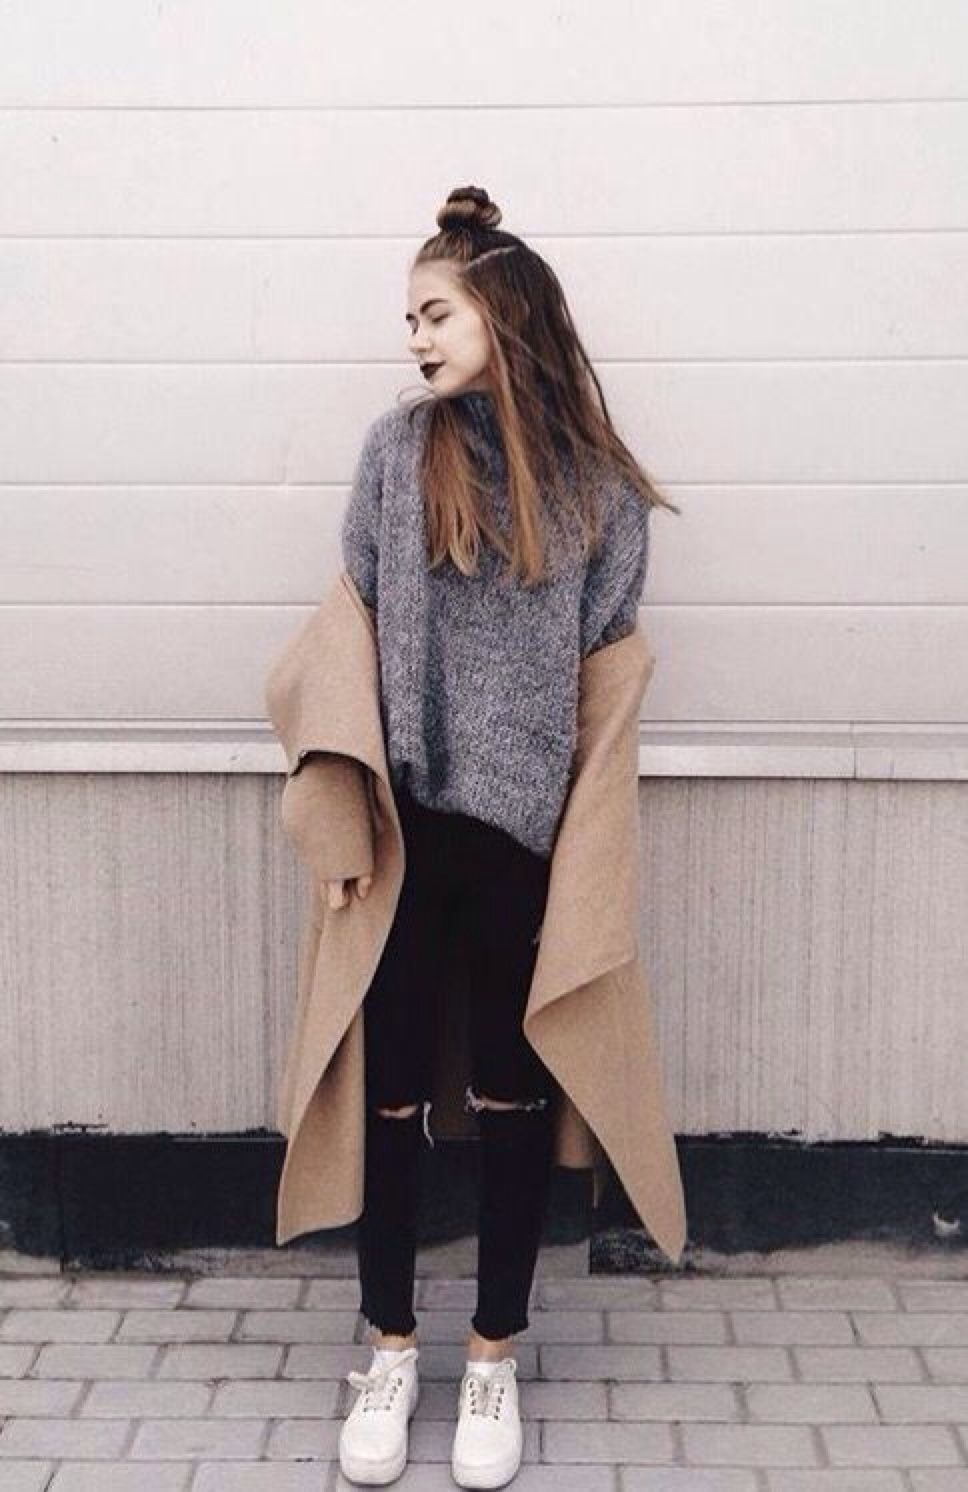 Girls Hipster fashion tumblr winter pictures rare photo